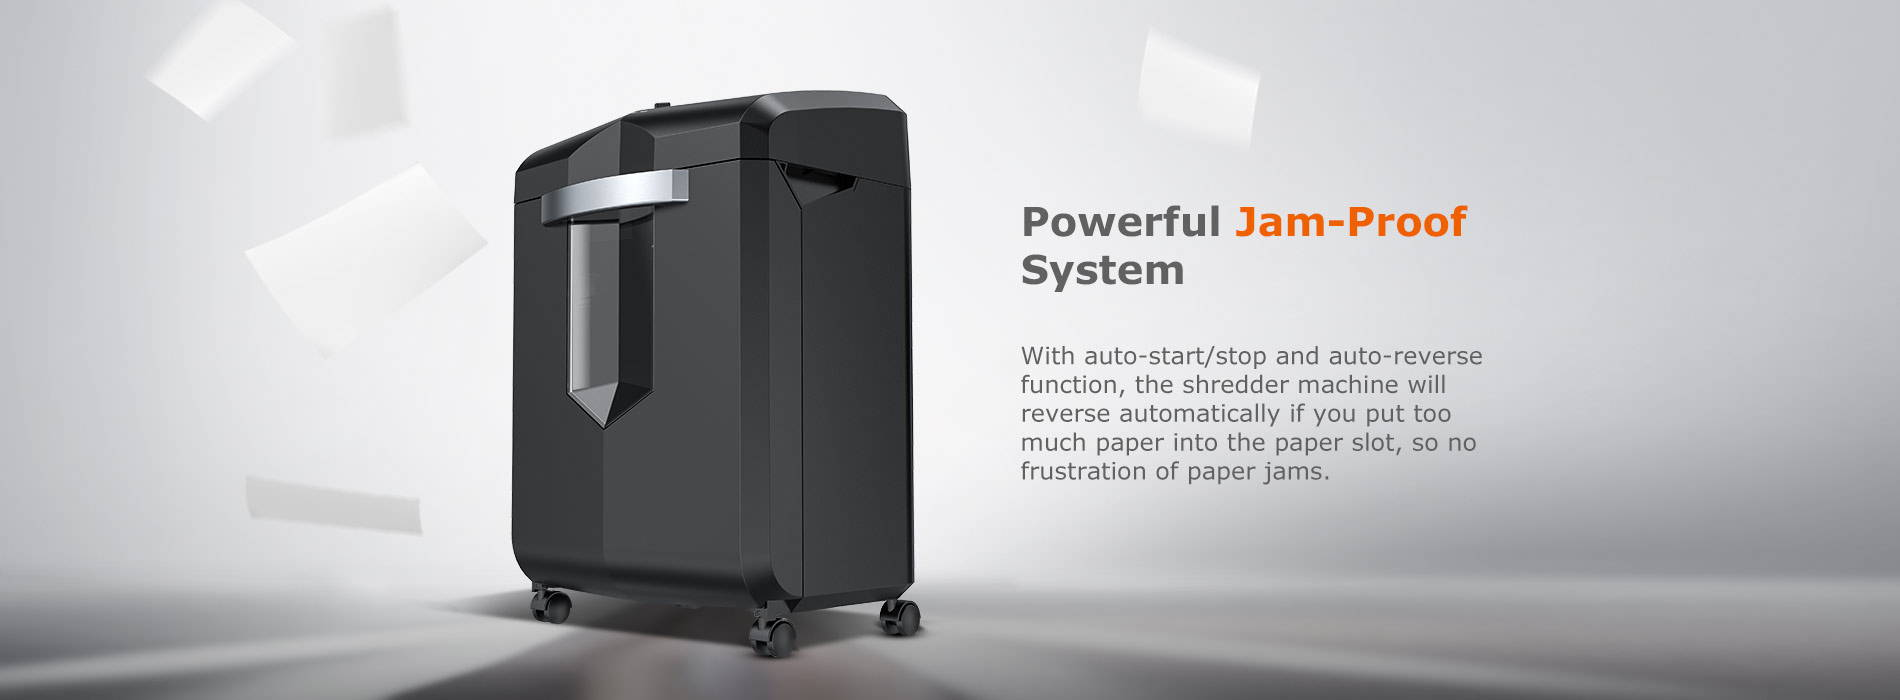 Quiet operation  The working noise level of this shredder is 62dB, which is ultra-low noise for your meeting room and office, no need to worry about disturbing others.